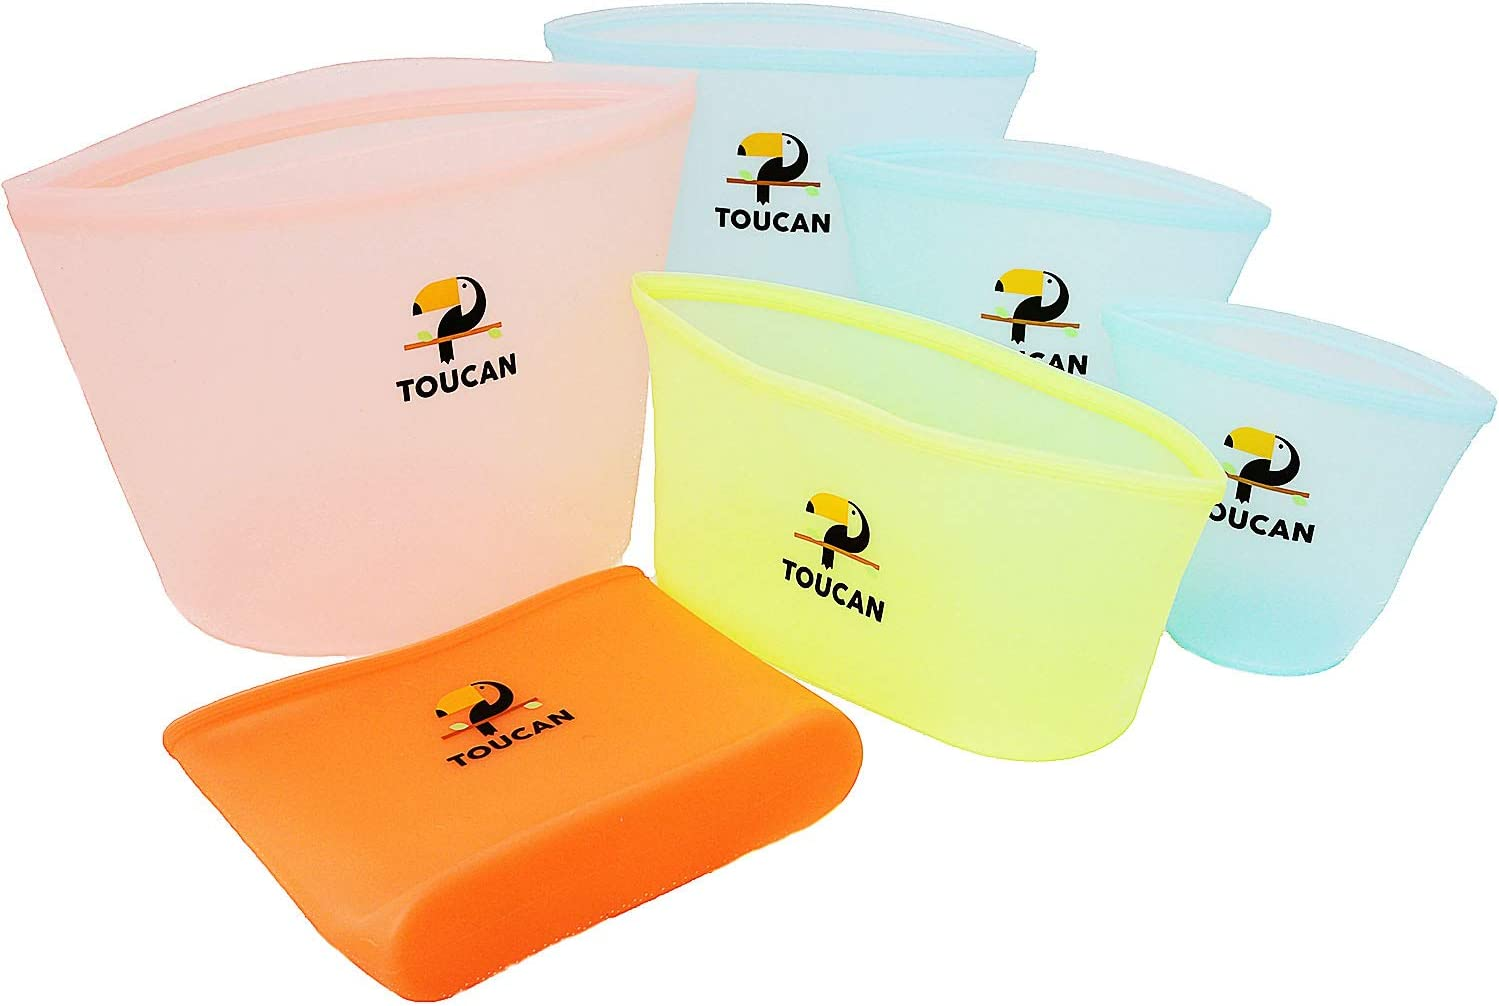 Toucan Silicone Storage Bags – 6 pcs Leakproof Reusable Storage Bag set with Cups, Dish, Sandwich Bag and Cooking Bag – Non-BPA and Non-Toxic Snack Bags – Dishwasher Safe Silicone Containers